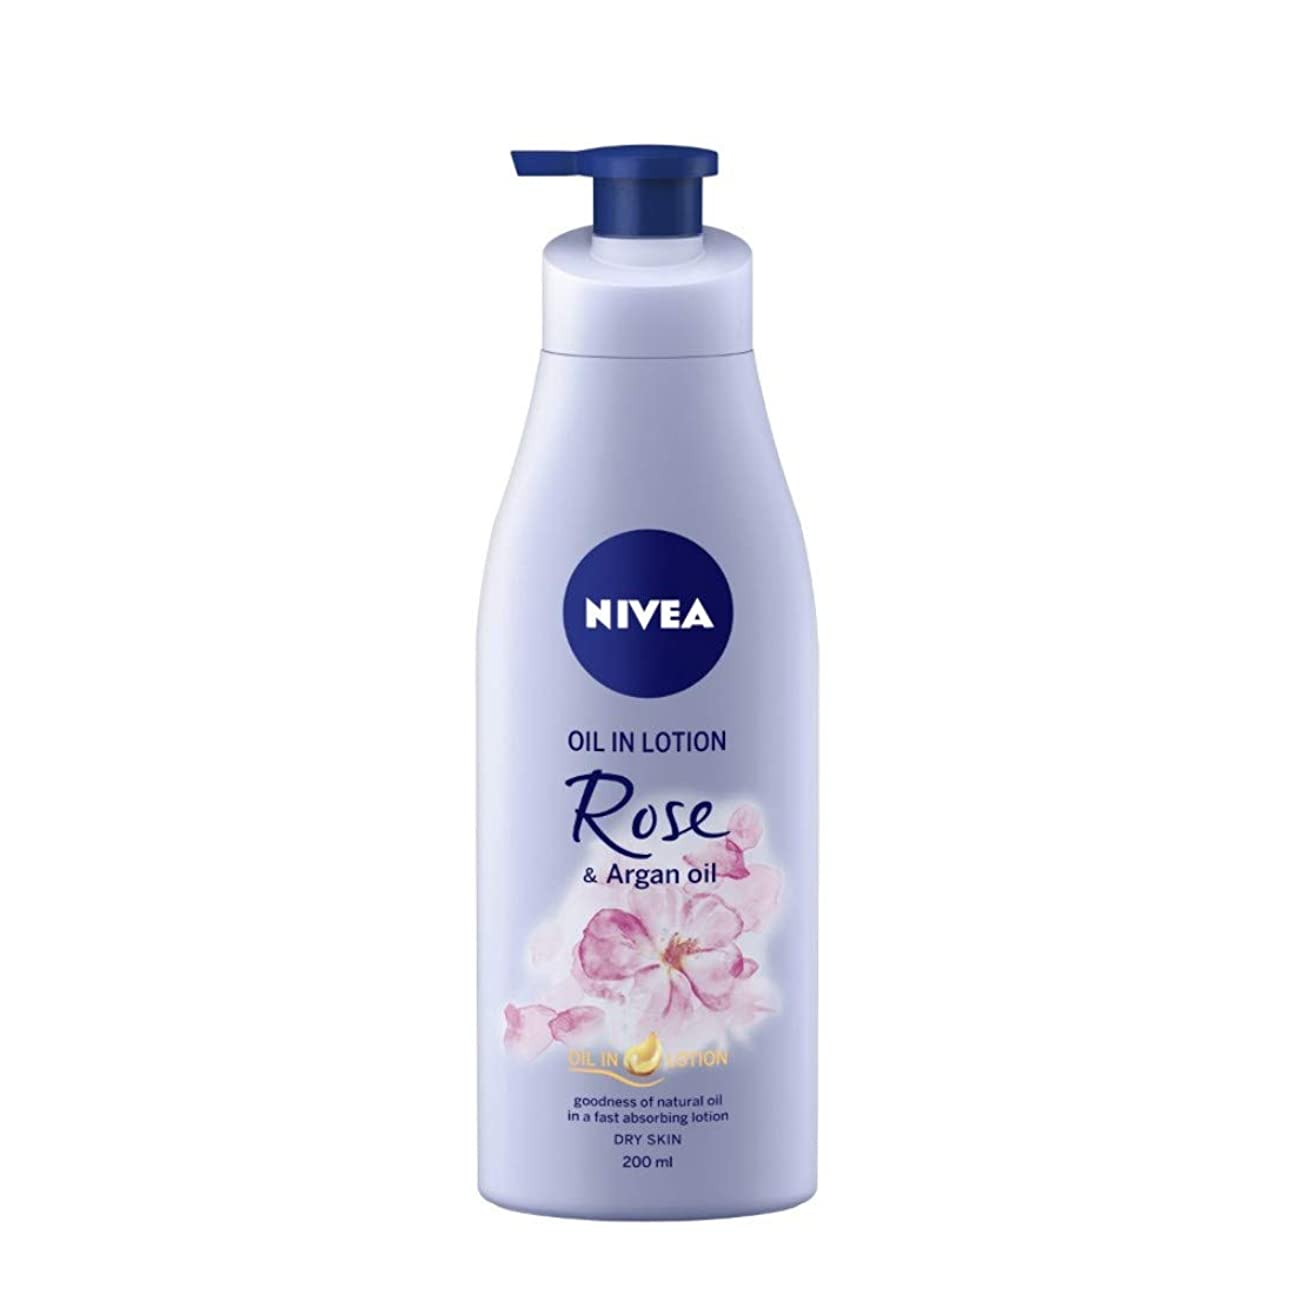 魔術師ライナー旅客NIVEA Oil in Lotion, Rose and Argan Oil, 200ml